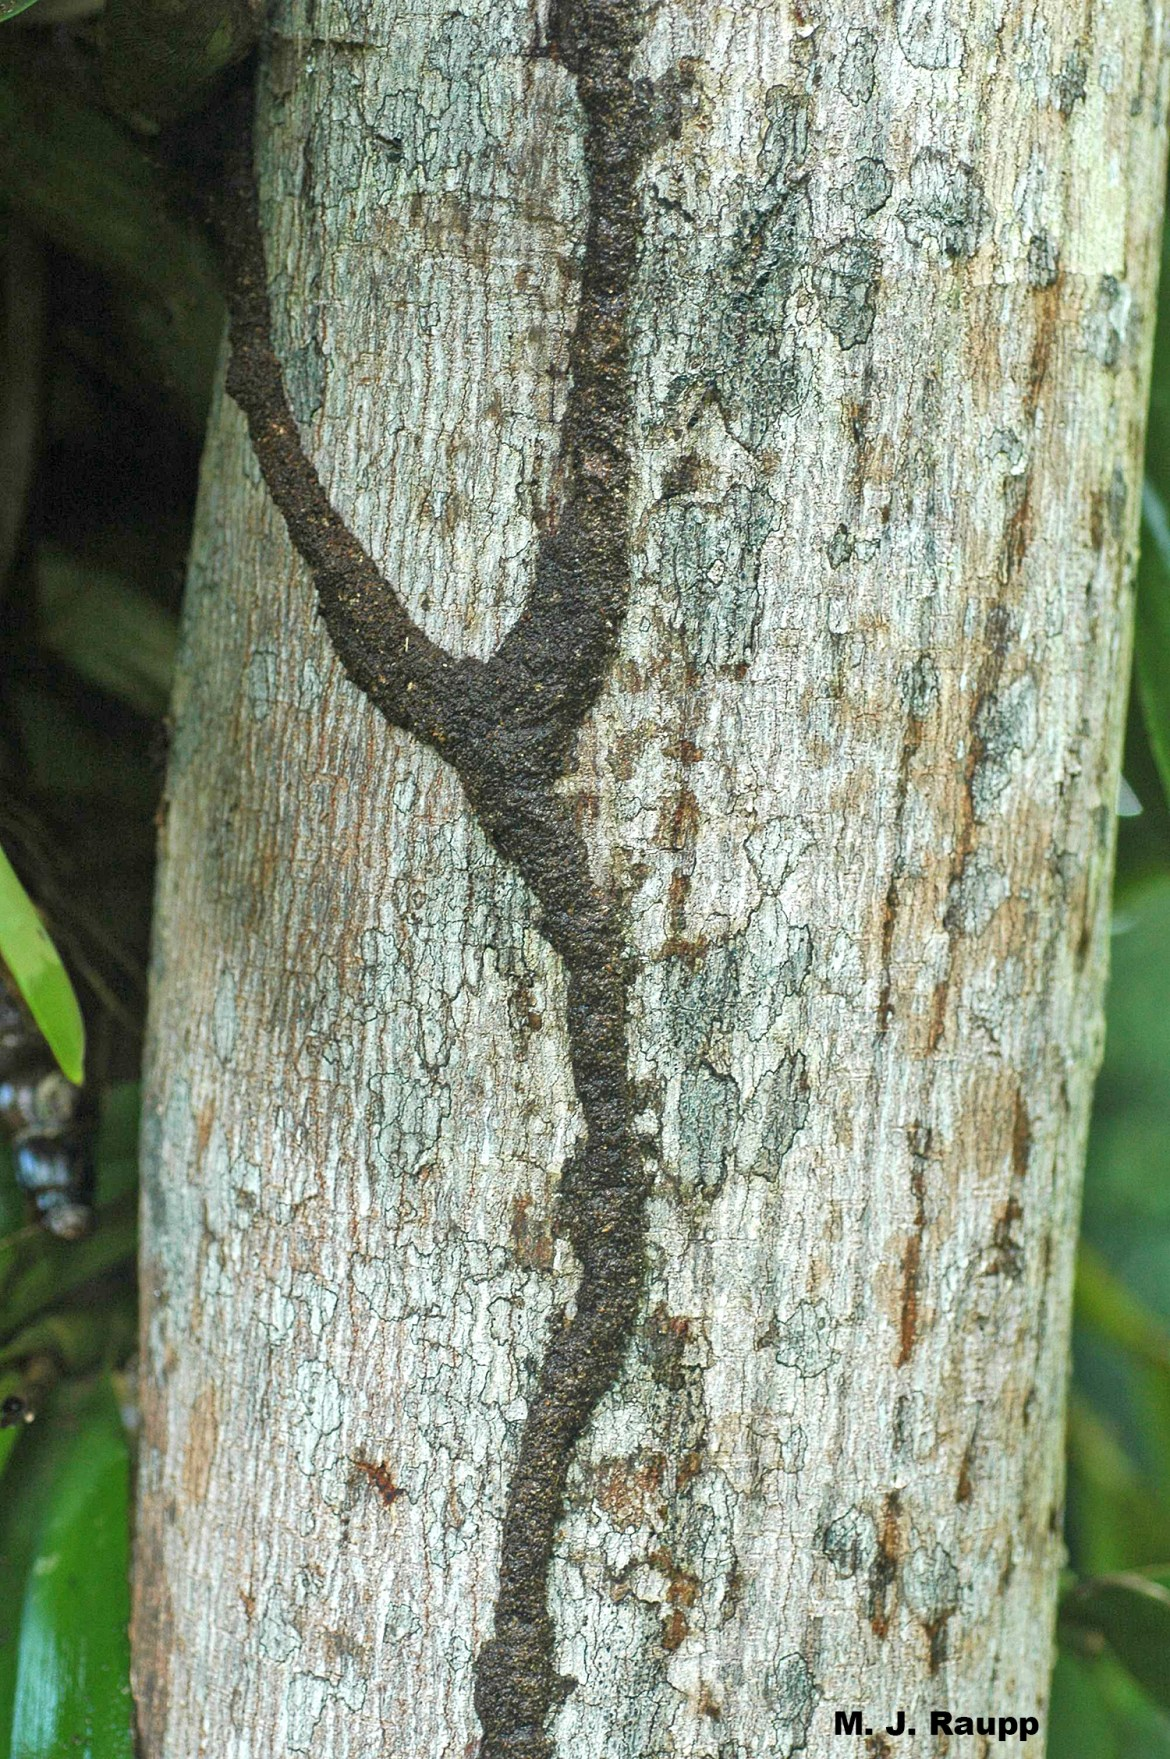 Dark trails mark the foraging routes of termites on tree trunks as they search for food.